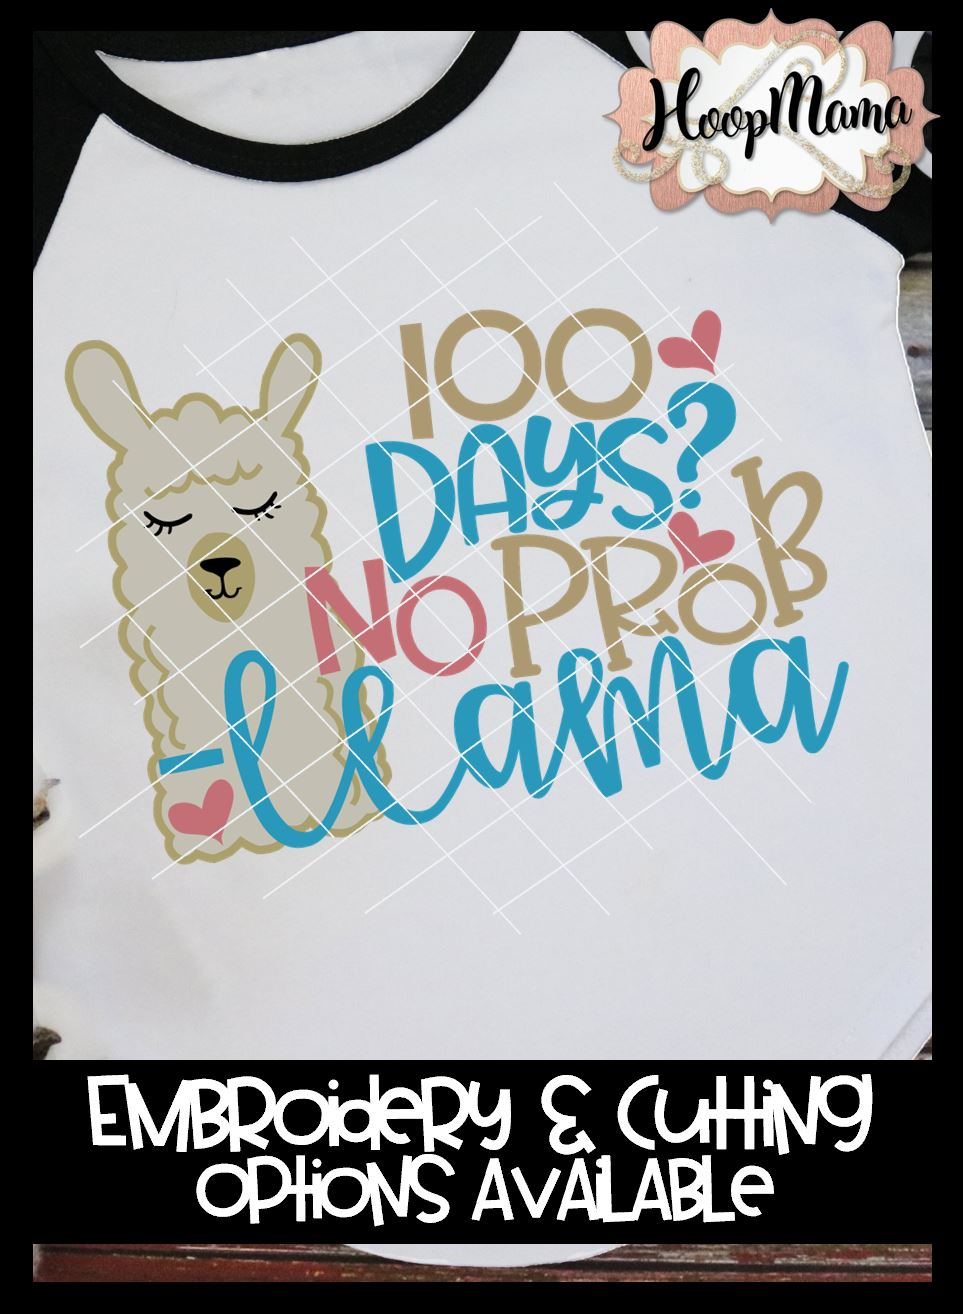 bc8a580ad 100 Days No Prob Llama - Embroidery and Cutting Options - HoopMama